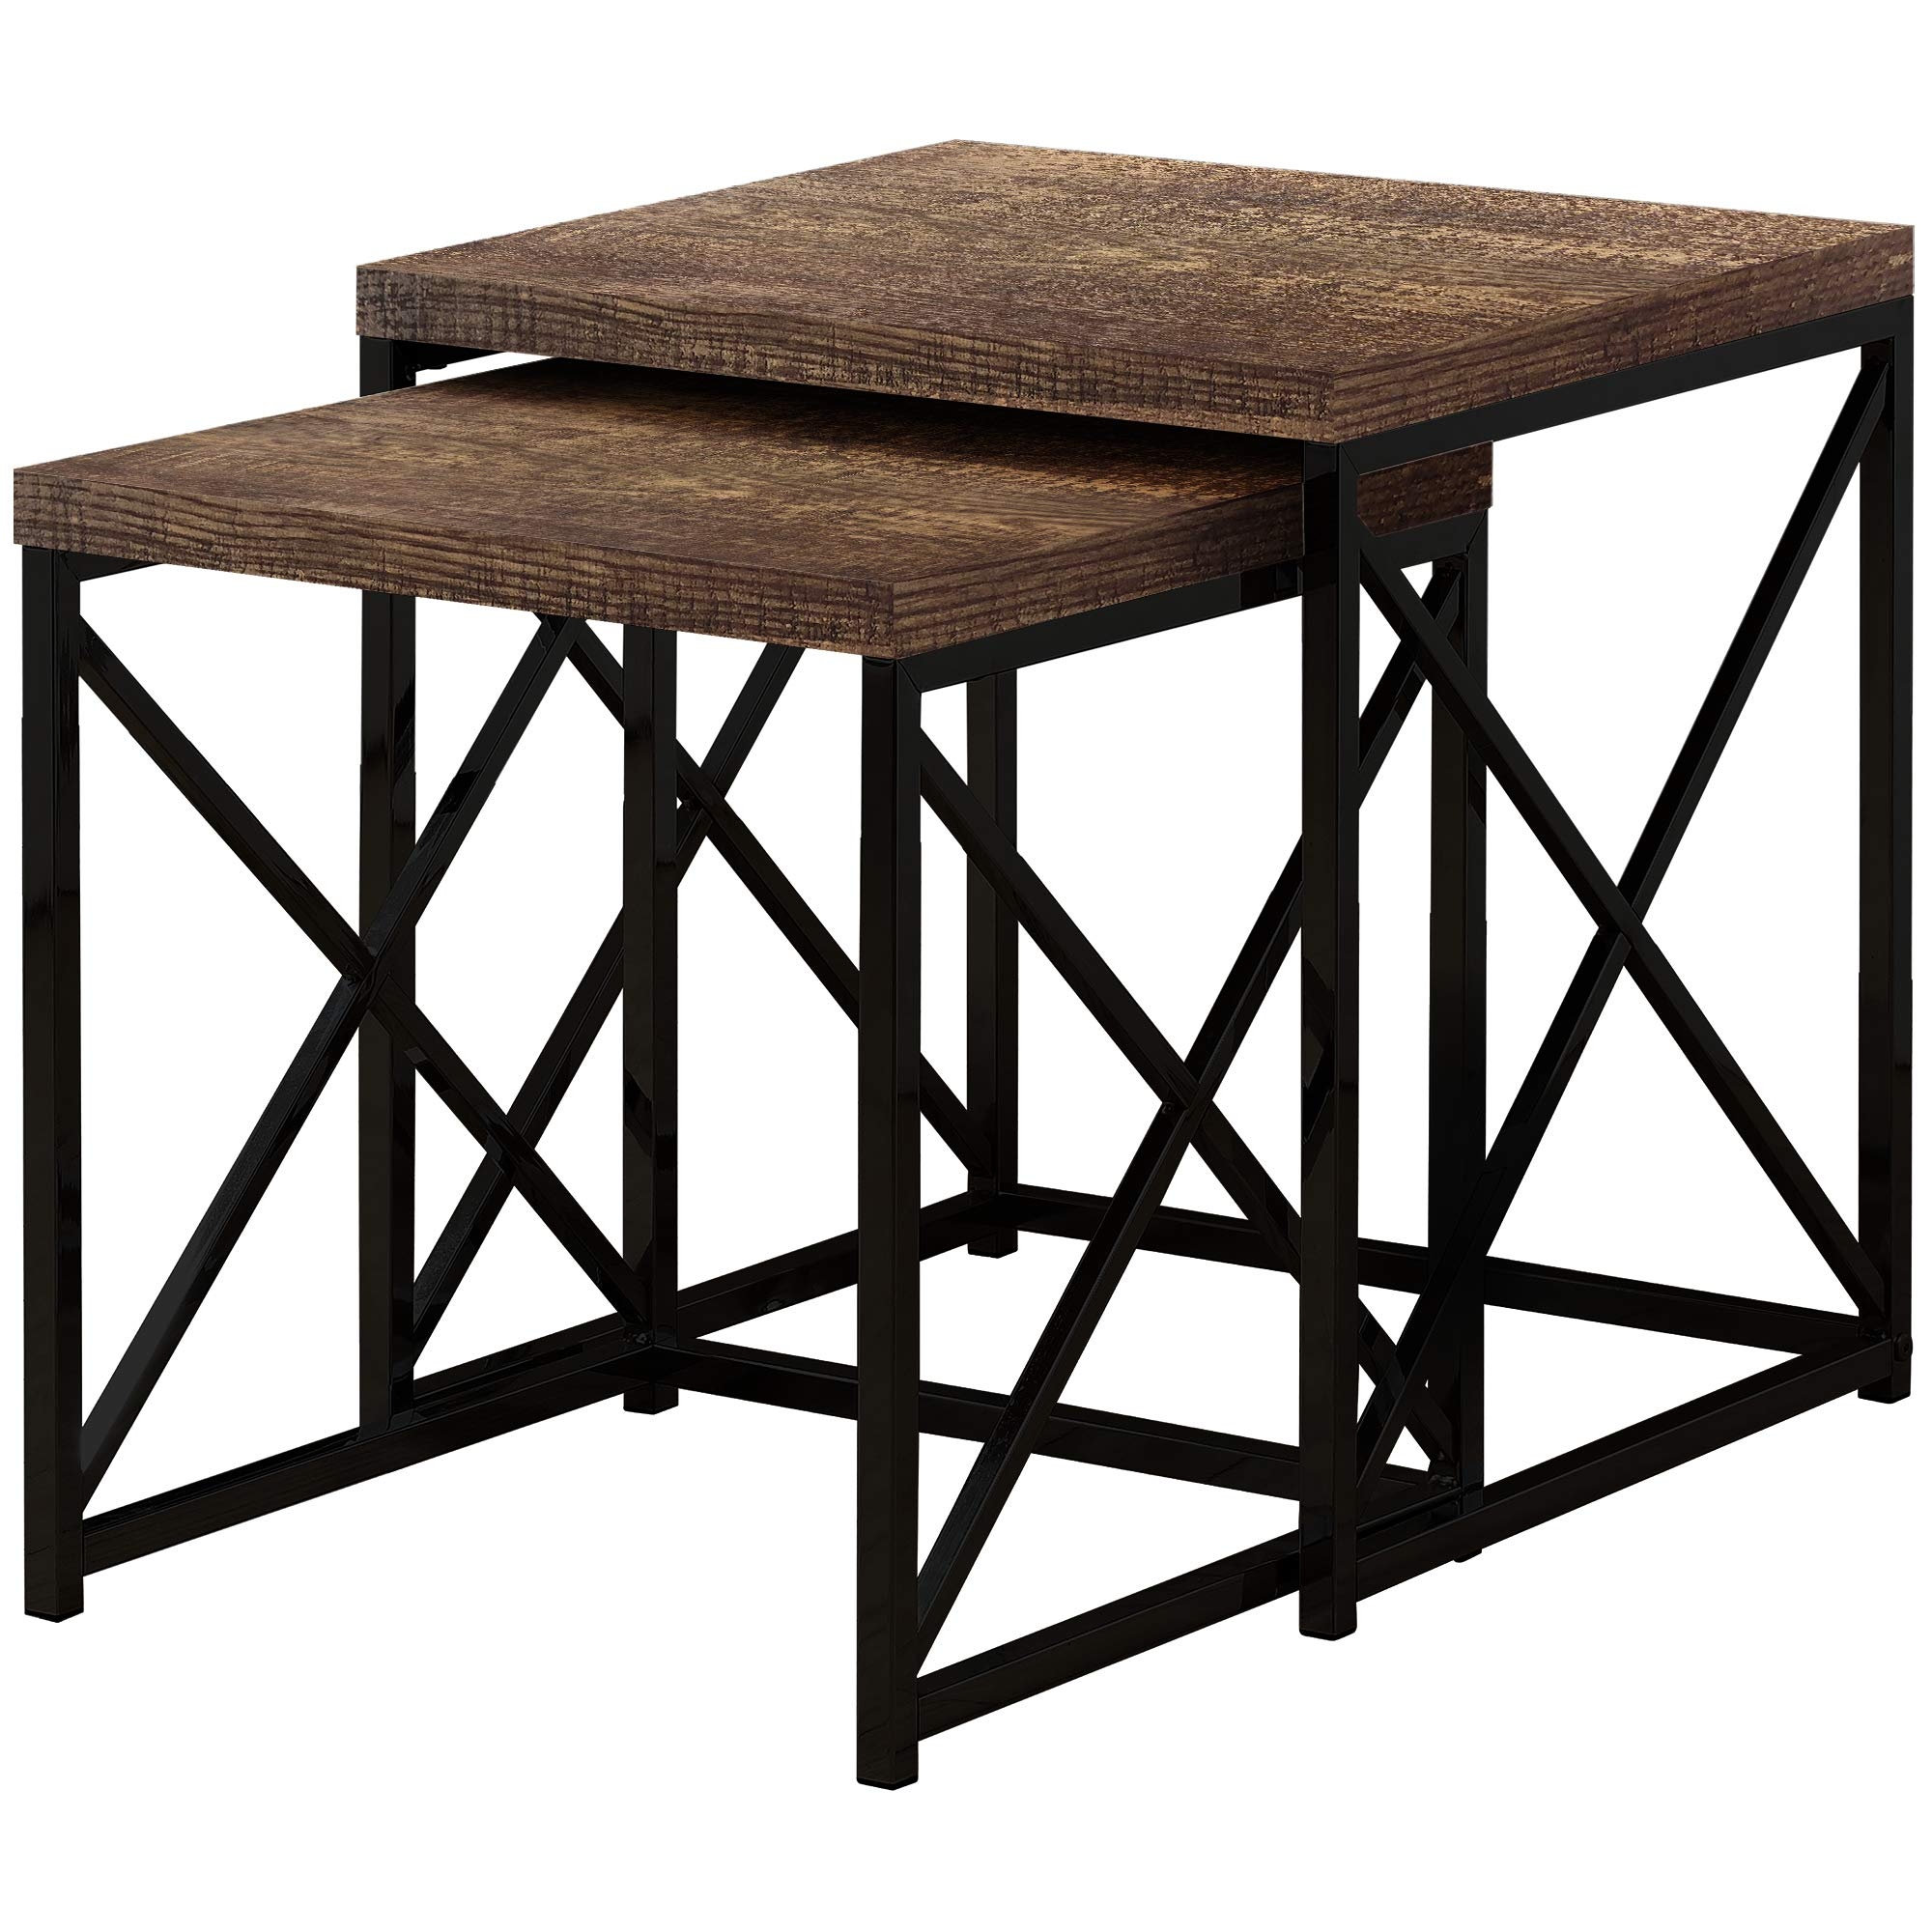 Monarch Specialties I I 3413 TABLE-2PCS Set Reclaimed Wood/Black Nesting Table, Brown by Monarch Specialties